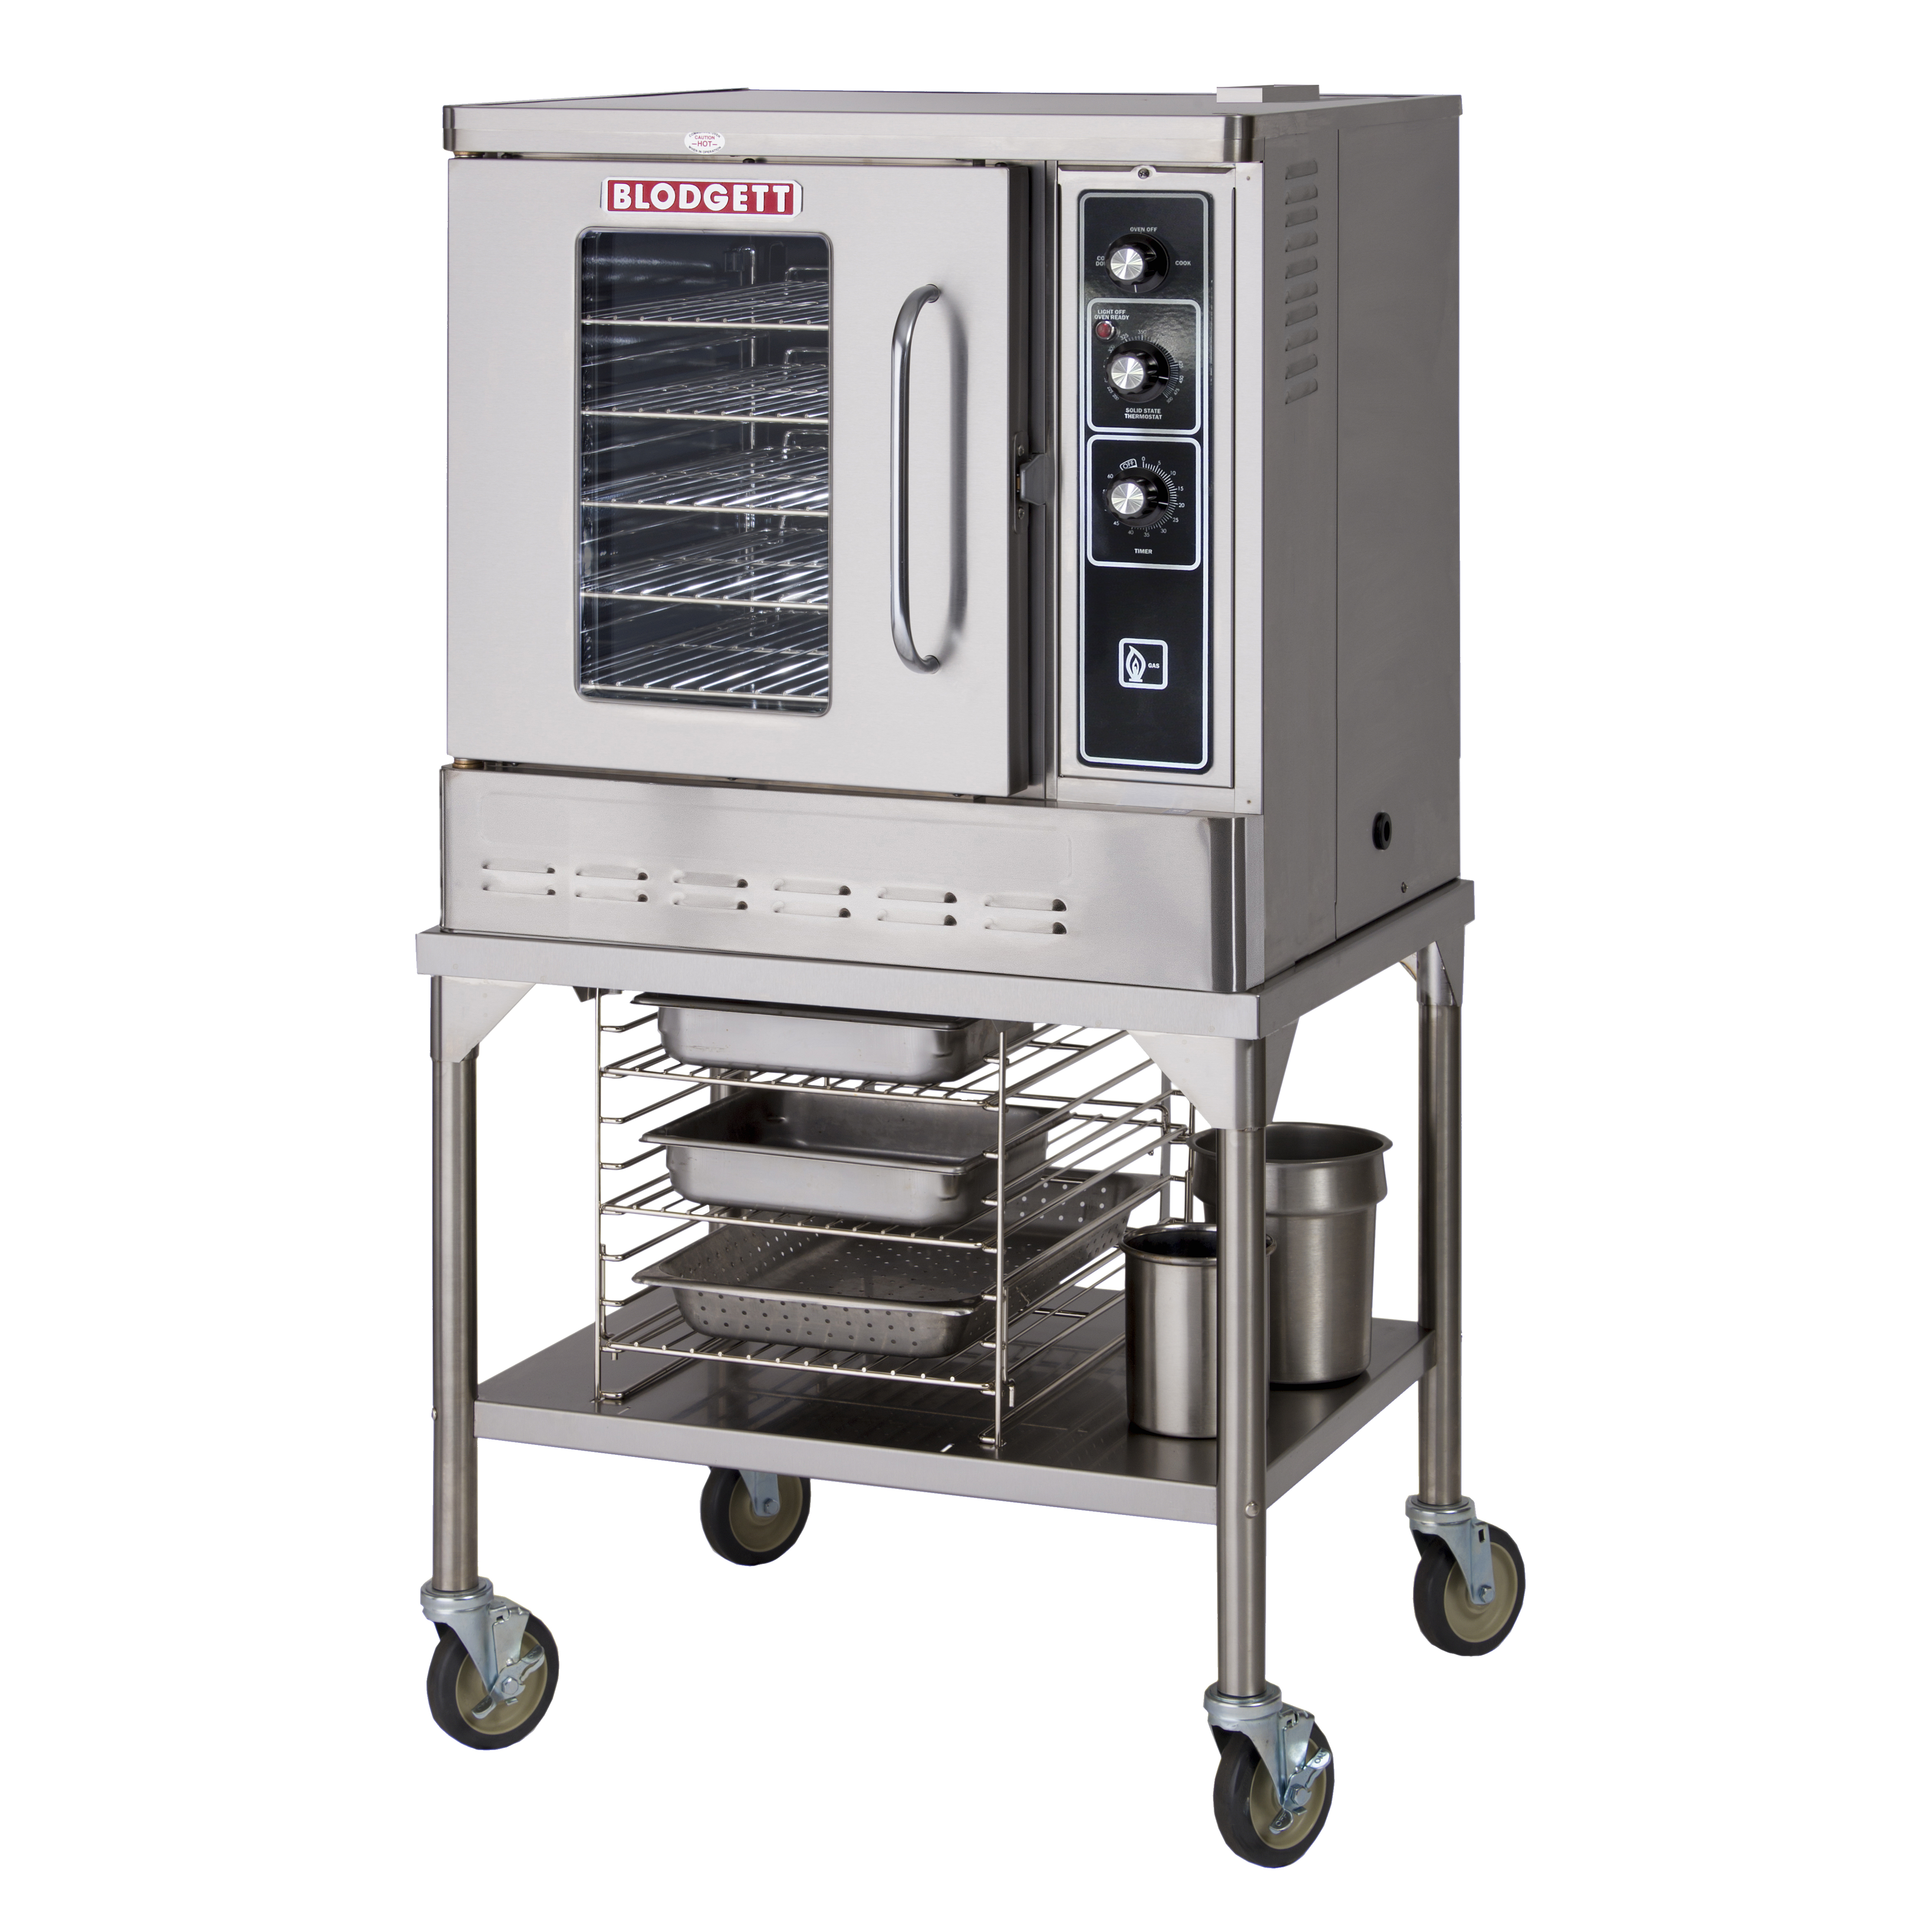 Blodgett Oven DFG-50 BASE convection oven, gas